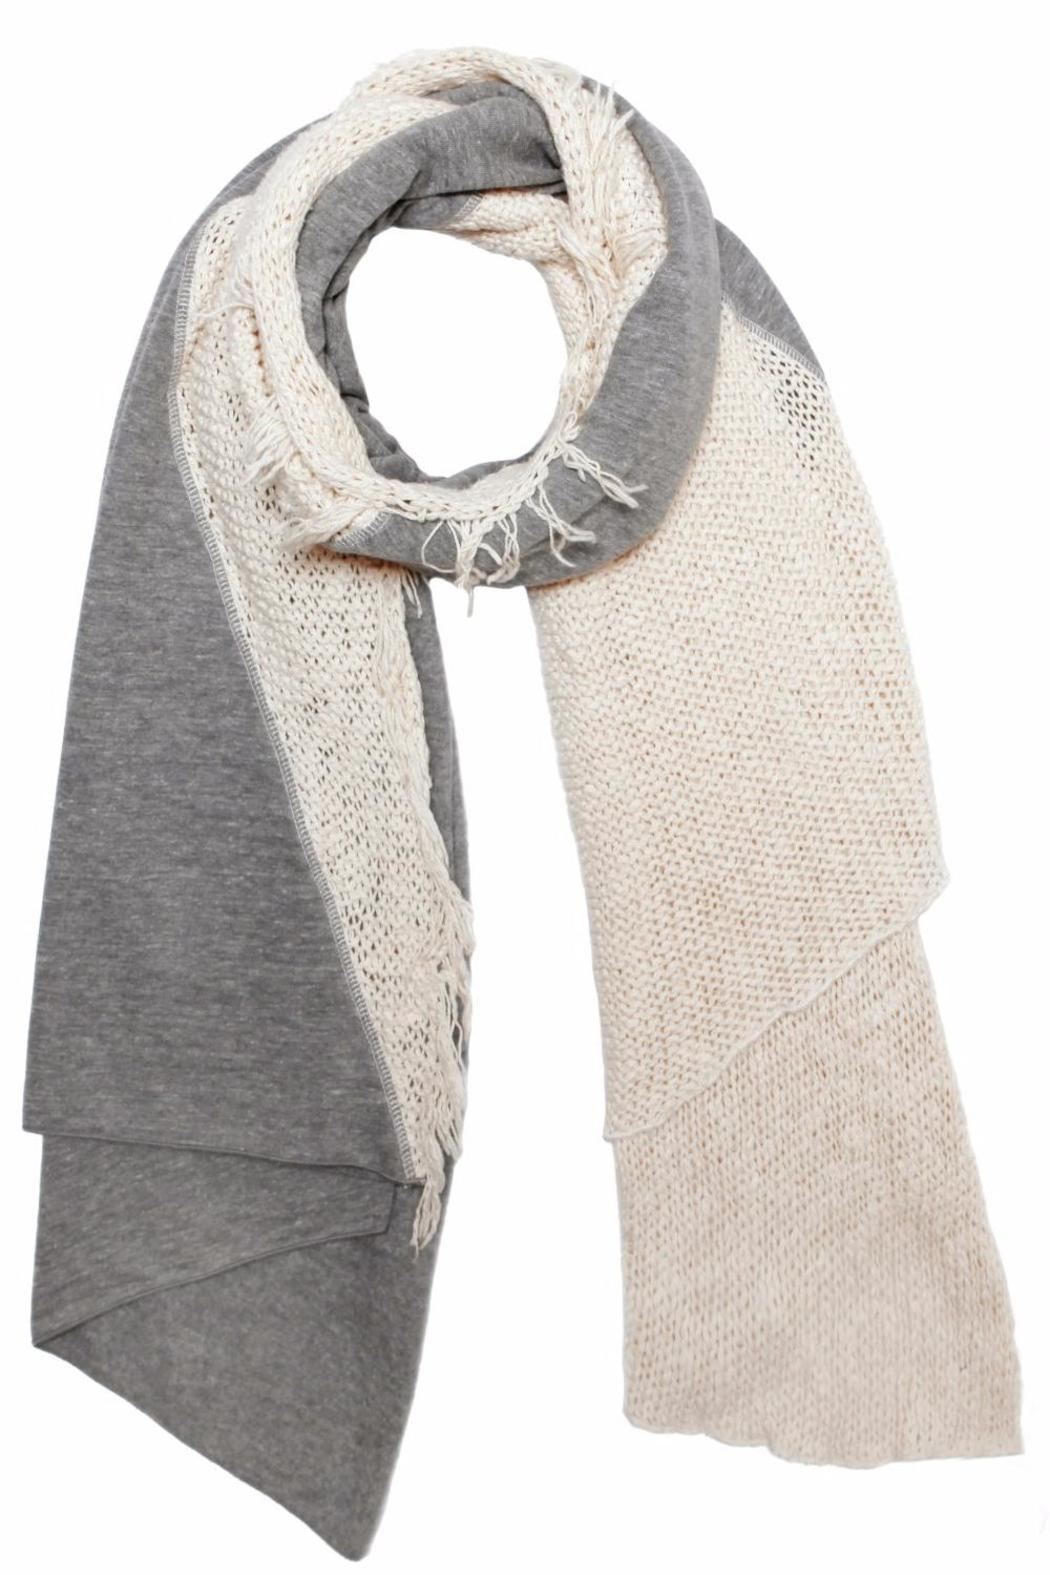 Donni Charm Knit Diagonal Scarf From New York City By Lexie Shoptiques